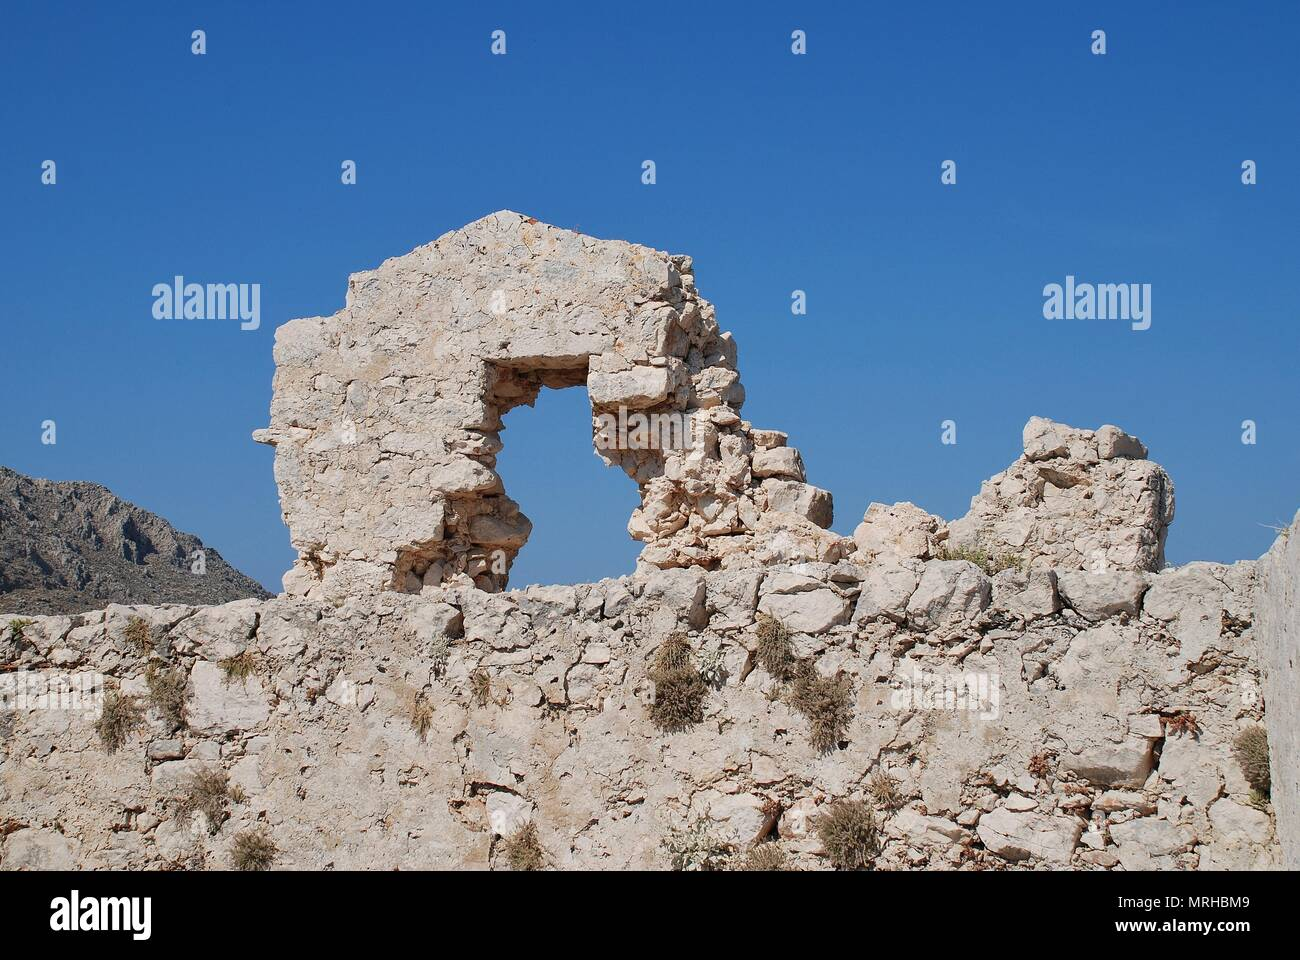 The ruins of the medieval Crusader Knights castle on the Greek island of Halki. - Stock Image